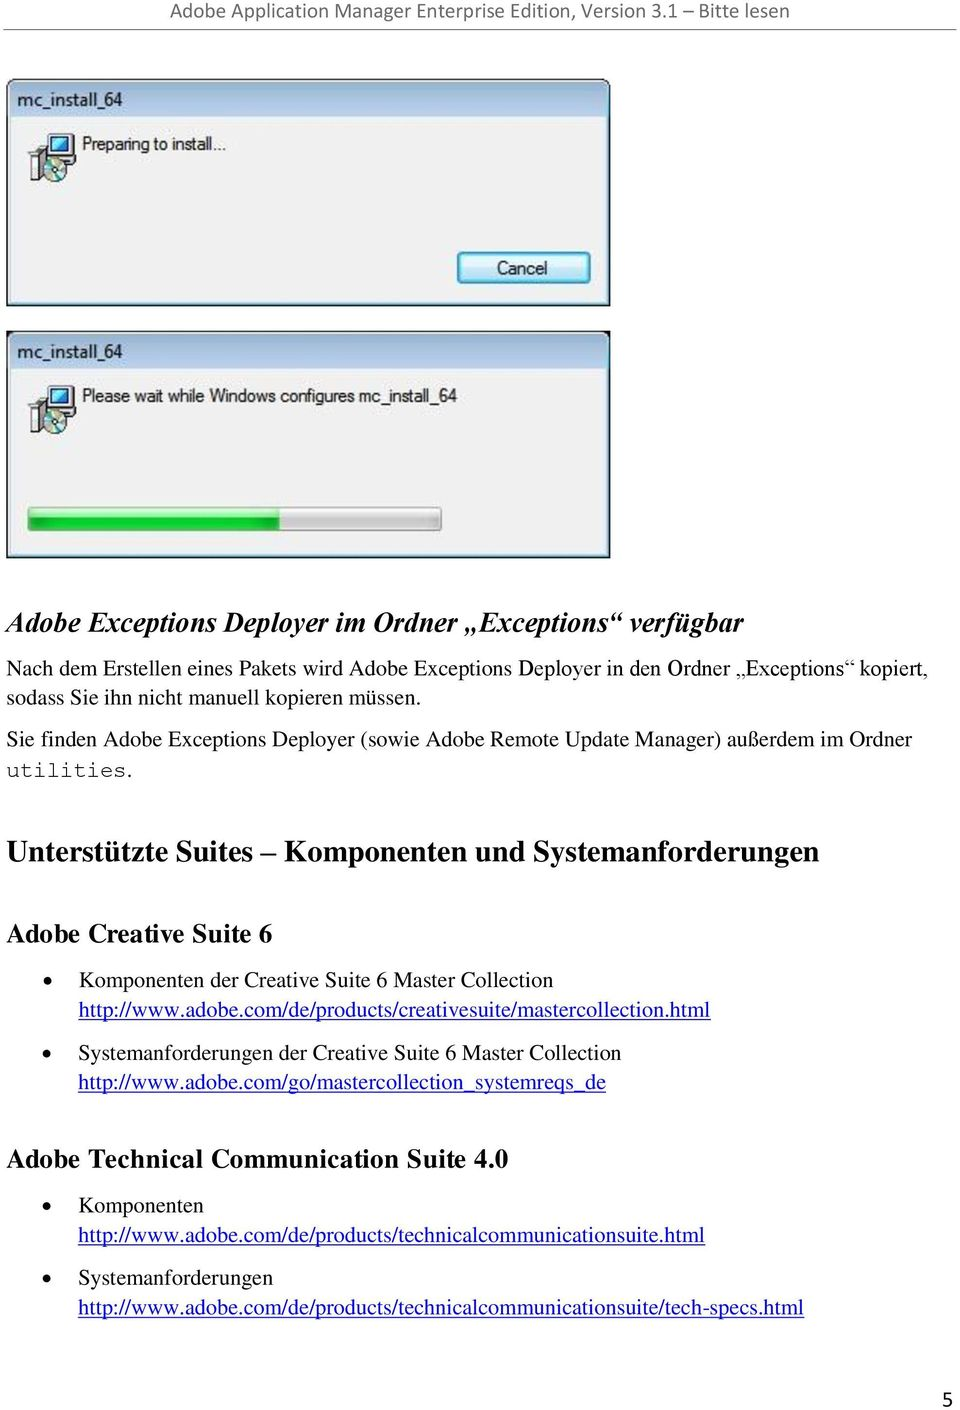 Unterstützte Suites Komponenten und Systemanforderungen Adobe Creative Suite 6 Komponenten der Creative Suite 6 Master Collection http://www.adobe.com/de/products/creativesuite/mastercollection.